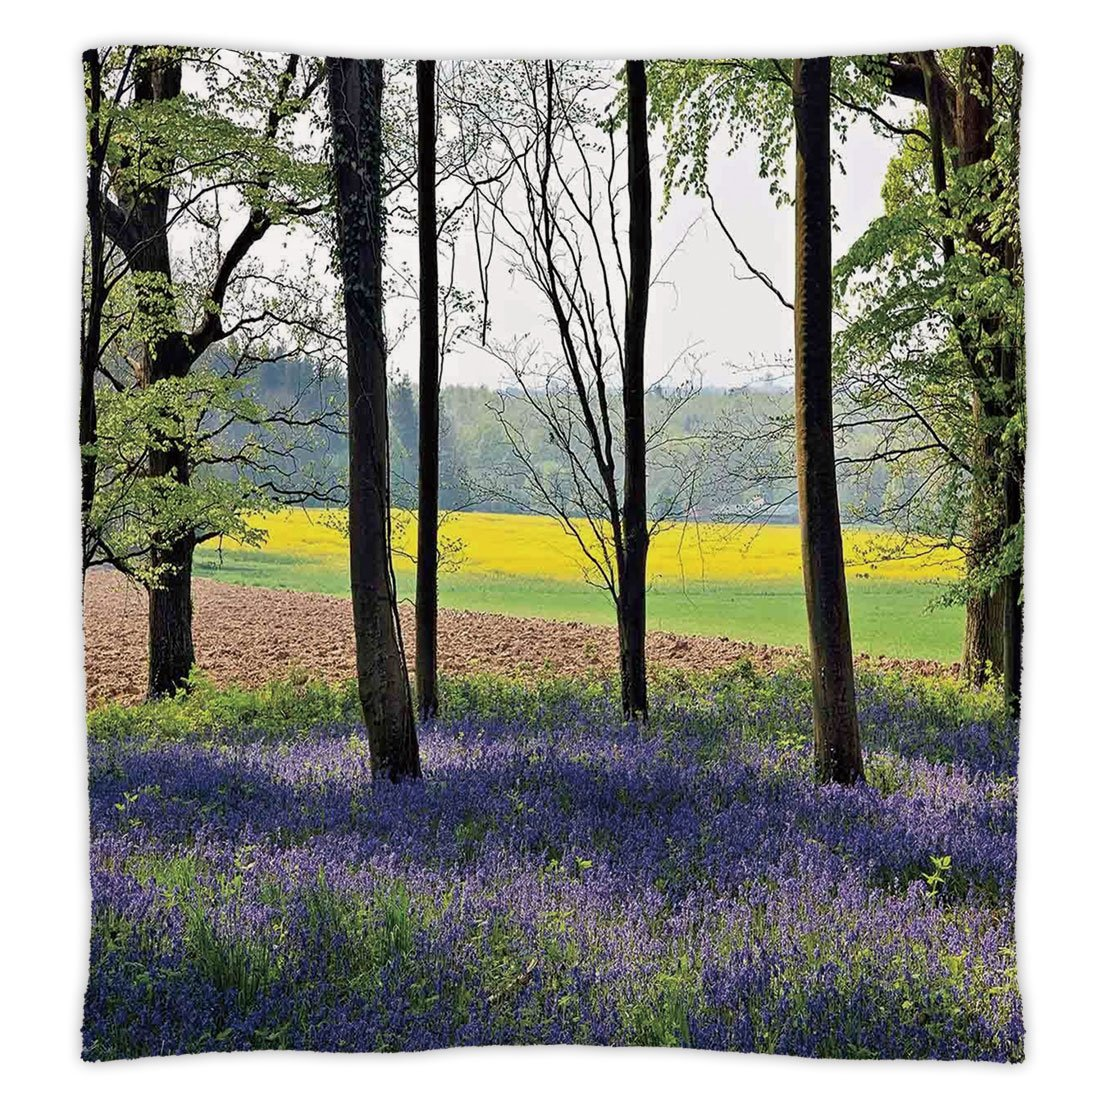 Super Soft Throw Blanket Custom Design Cozy Fleece Blanket,Woodland Decor,Bluebells in Wepham Woods Wildflowers Spring Rural Environment Photo Print,Purple Yellow Green,Perfect for Couch Sofa or Bed